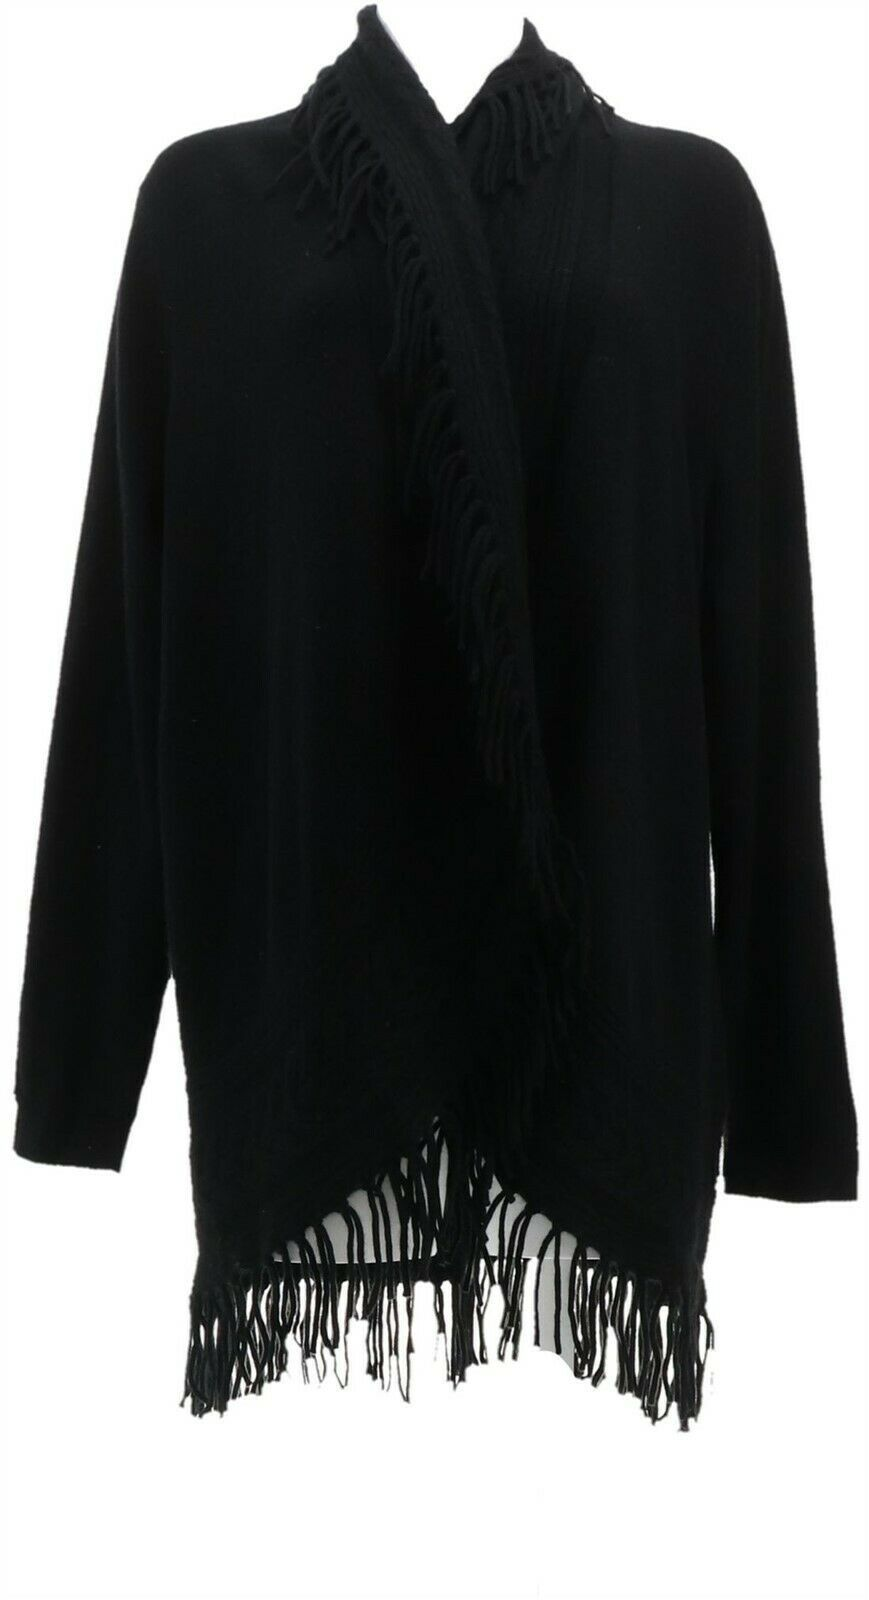 Primary image for Isaac Mizrahi 2-Ply Cashmere Cable Cardigan Fringe Black S NEW A343869